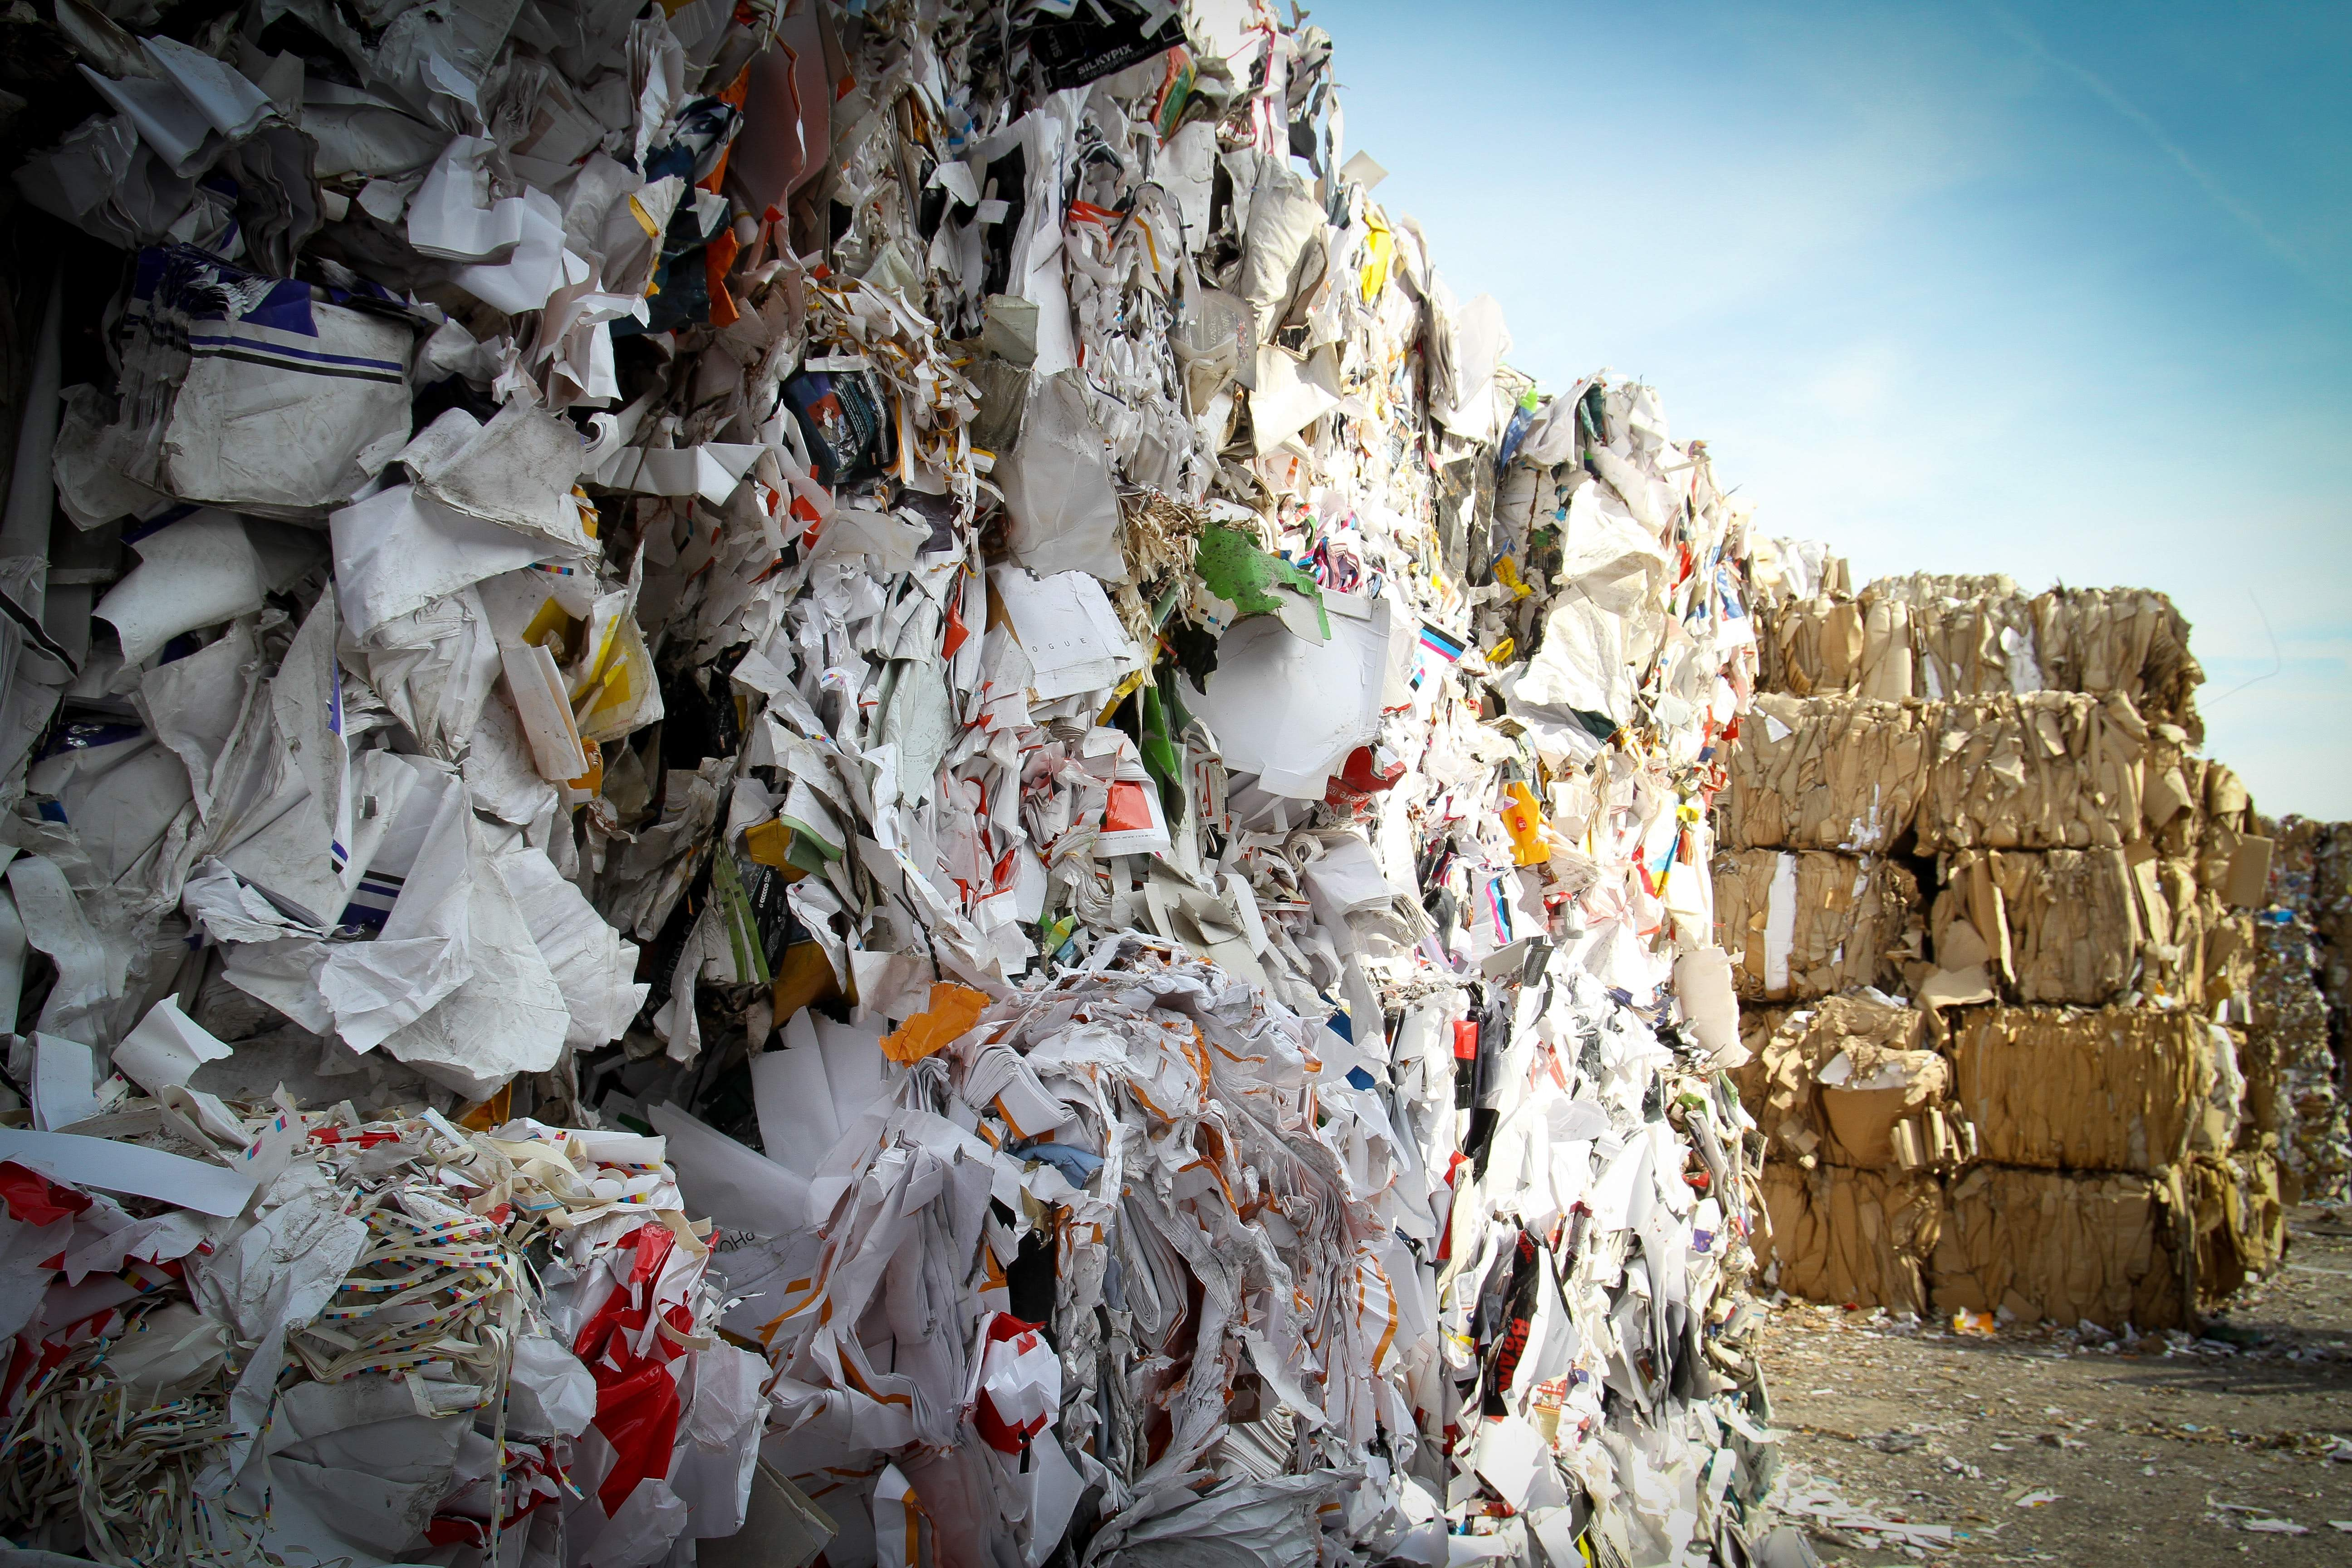 Recycling, packaging, recycle, recyclable, waste, landfill